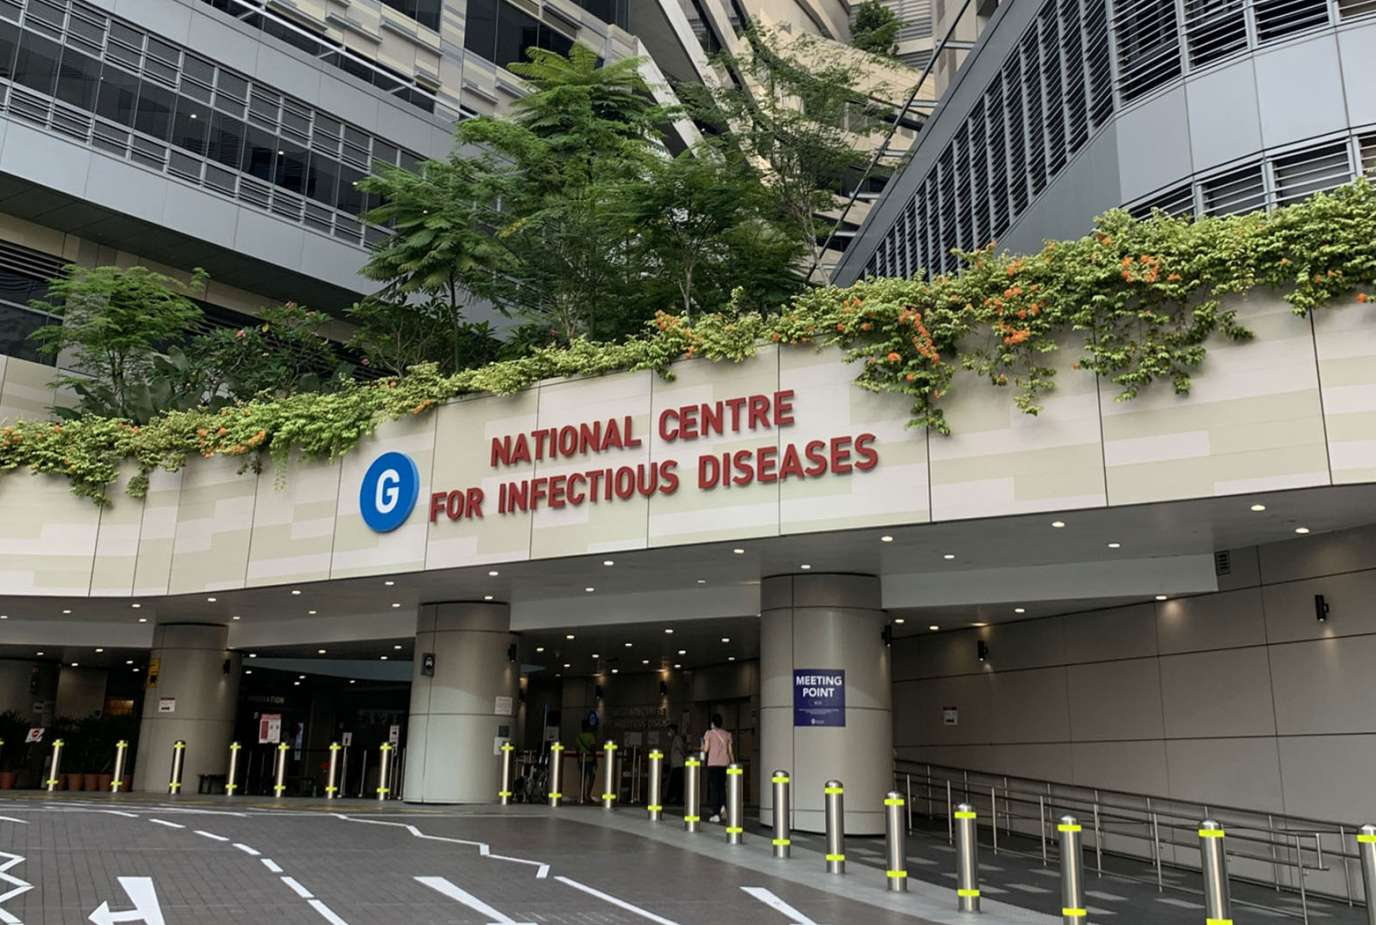 National Centre for Infectious Diseases